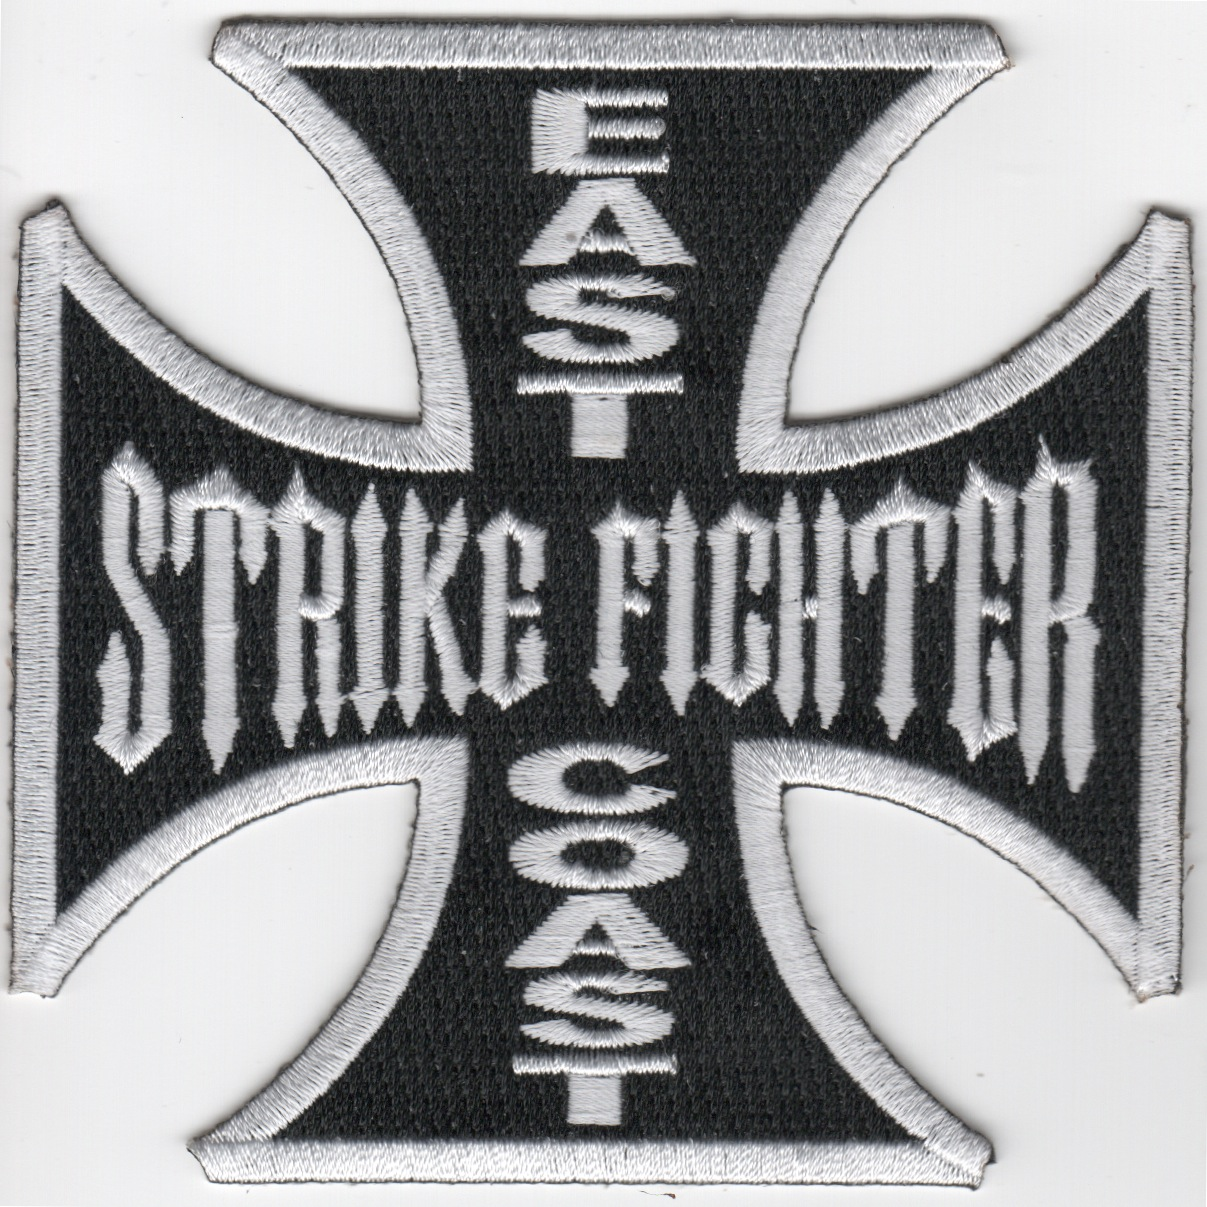 East Coast Strike Fighter Maltese Cross (Black)